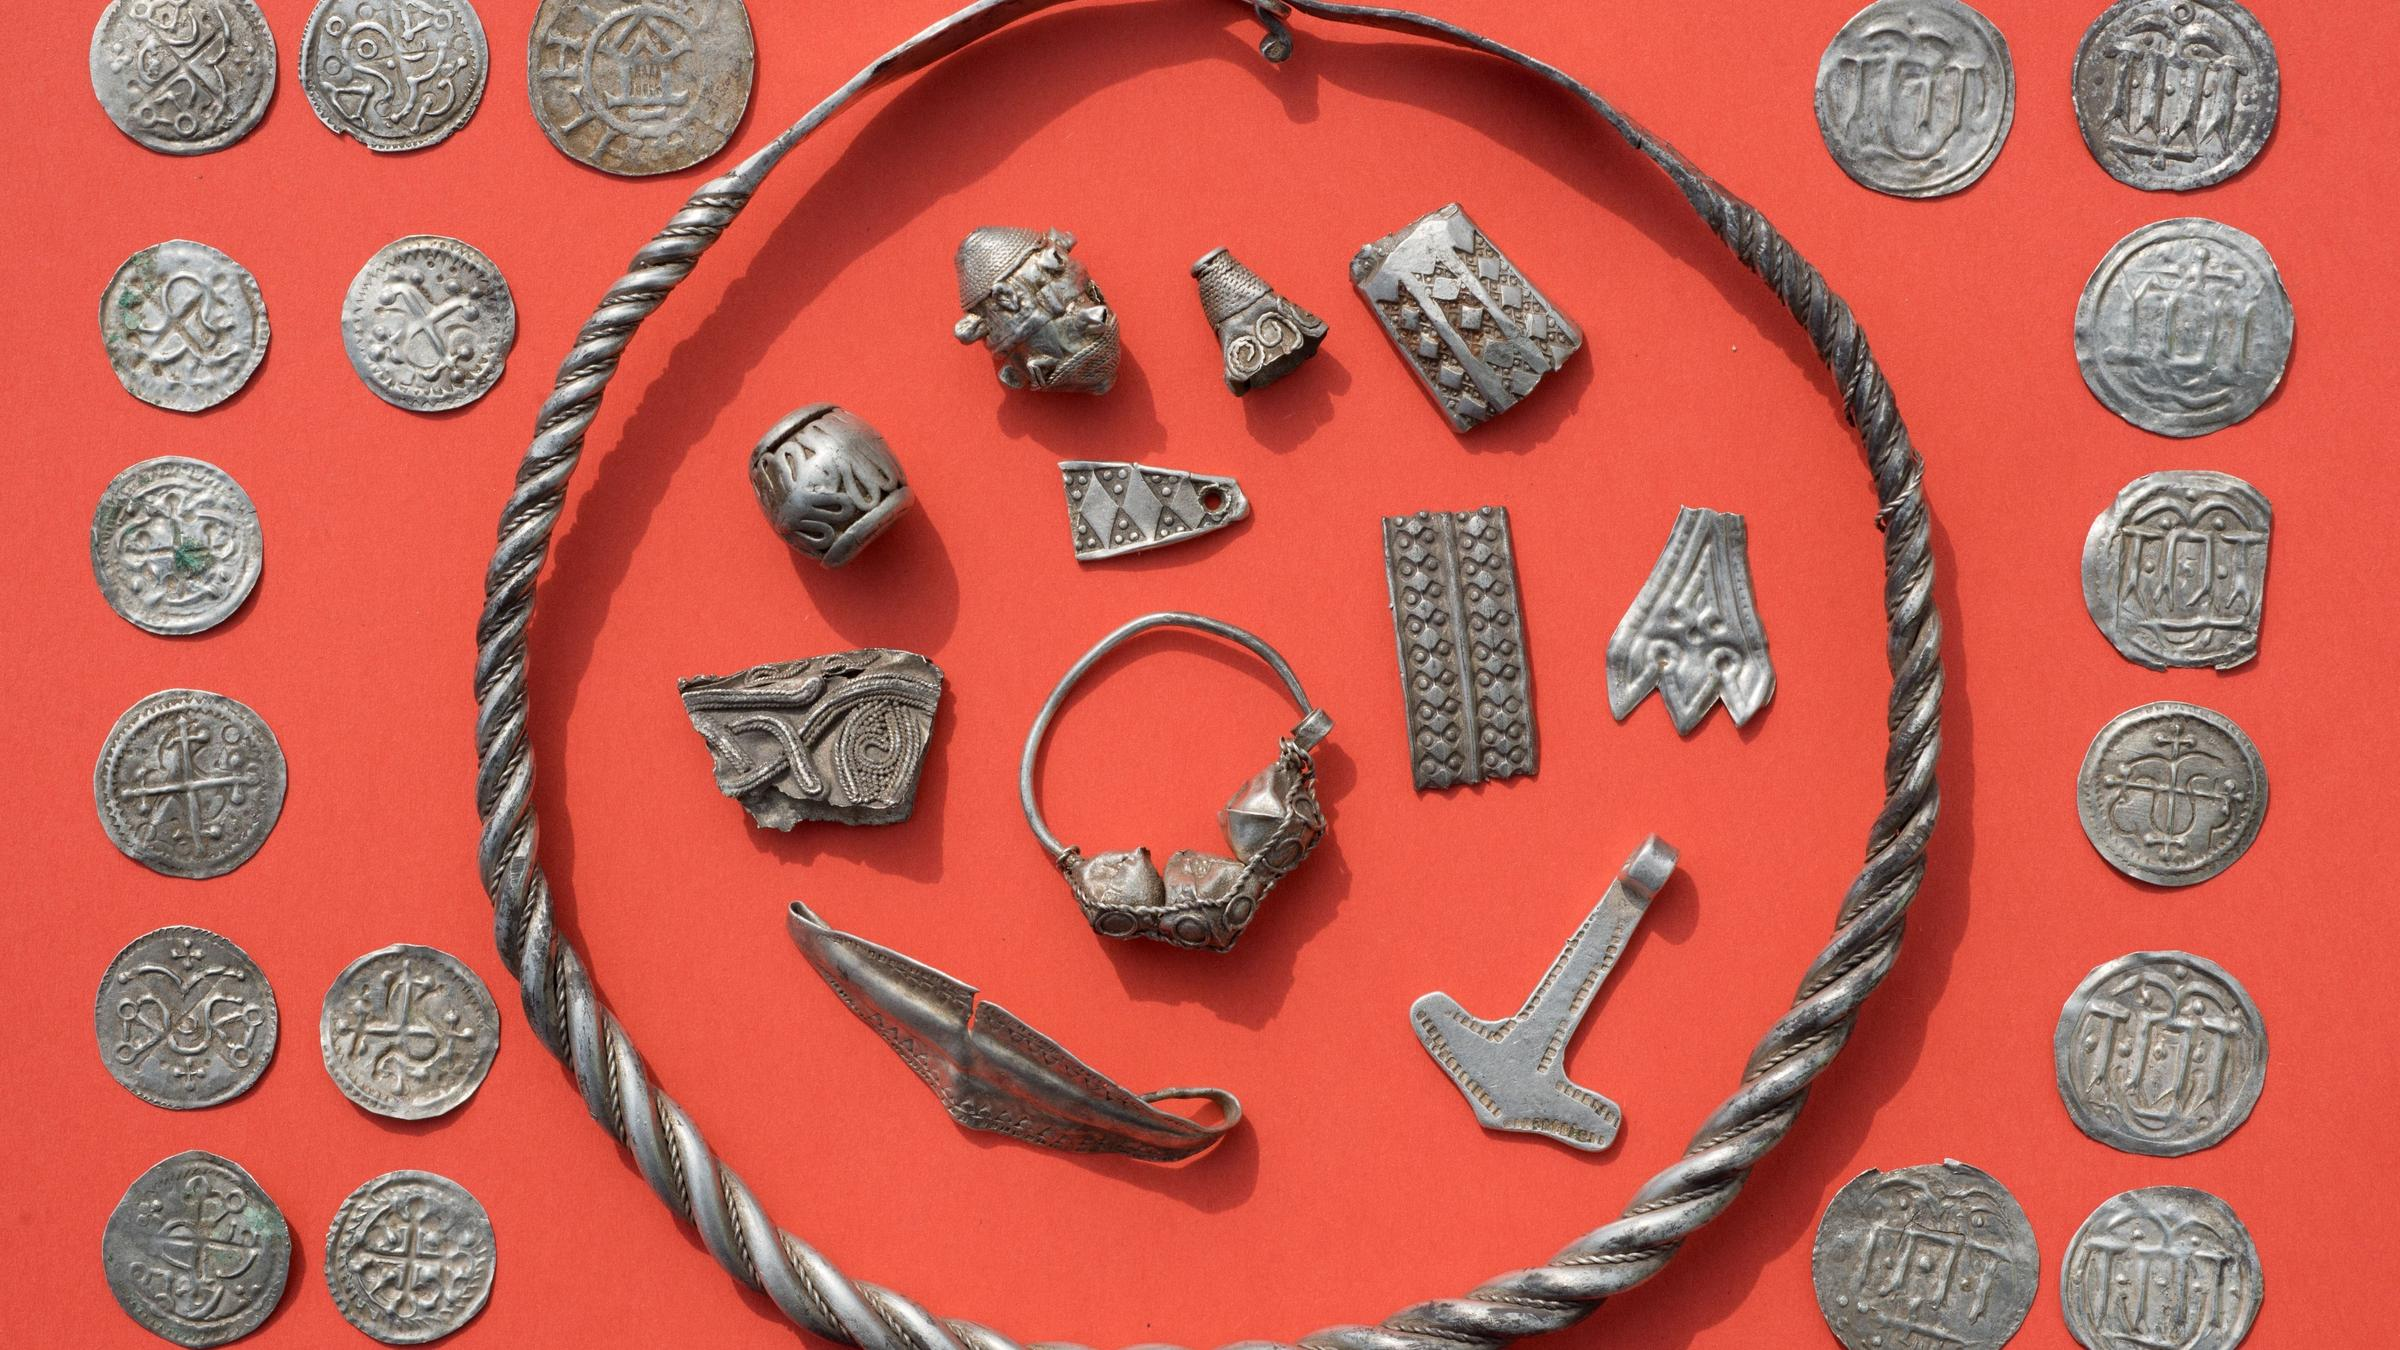 Amateur archaeologists find ancient treasure from era of Danish king